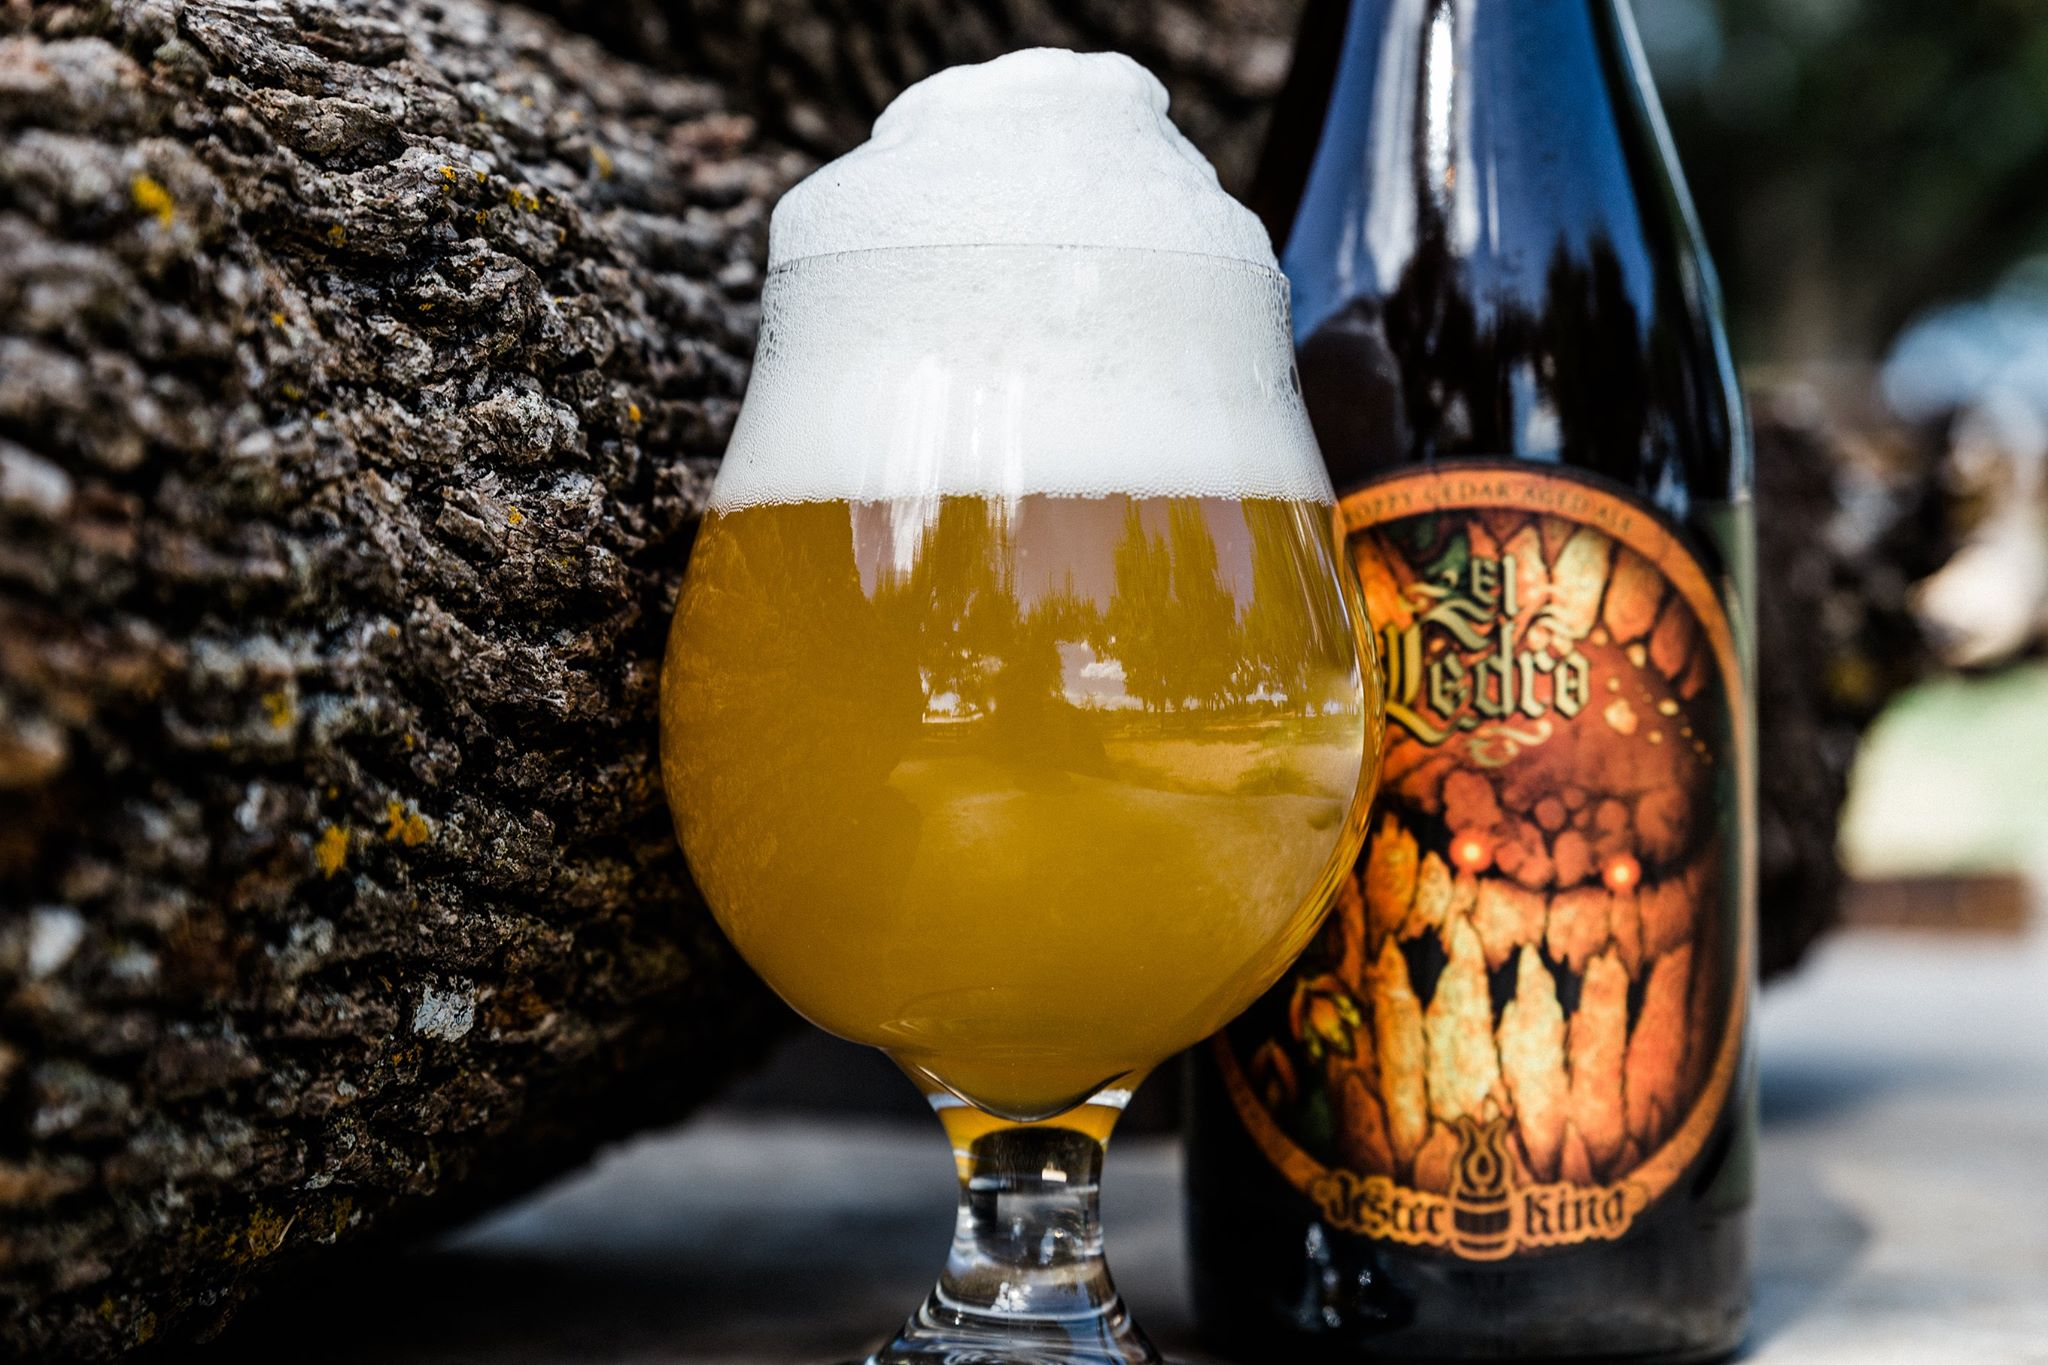 Jester King Brewery announced it is adopting the BA's independent craft brewer seal // Photo via Jester King's Facebook